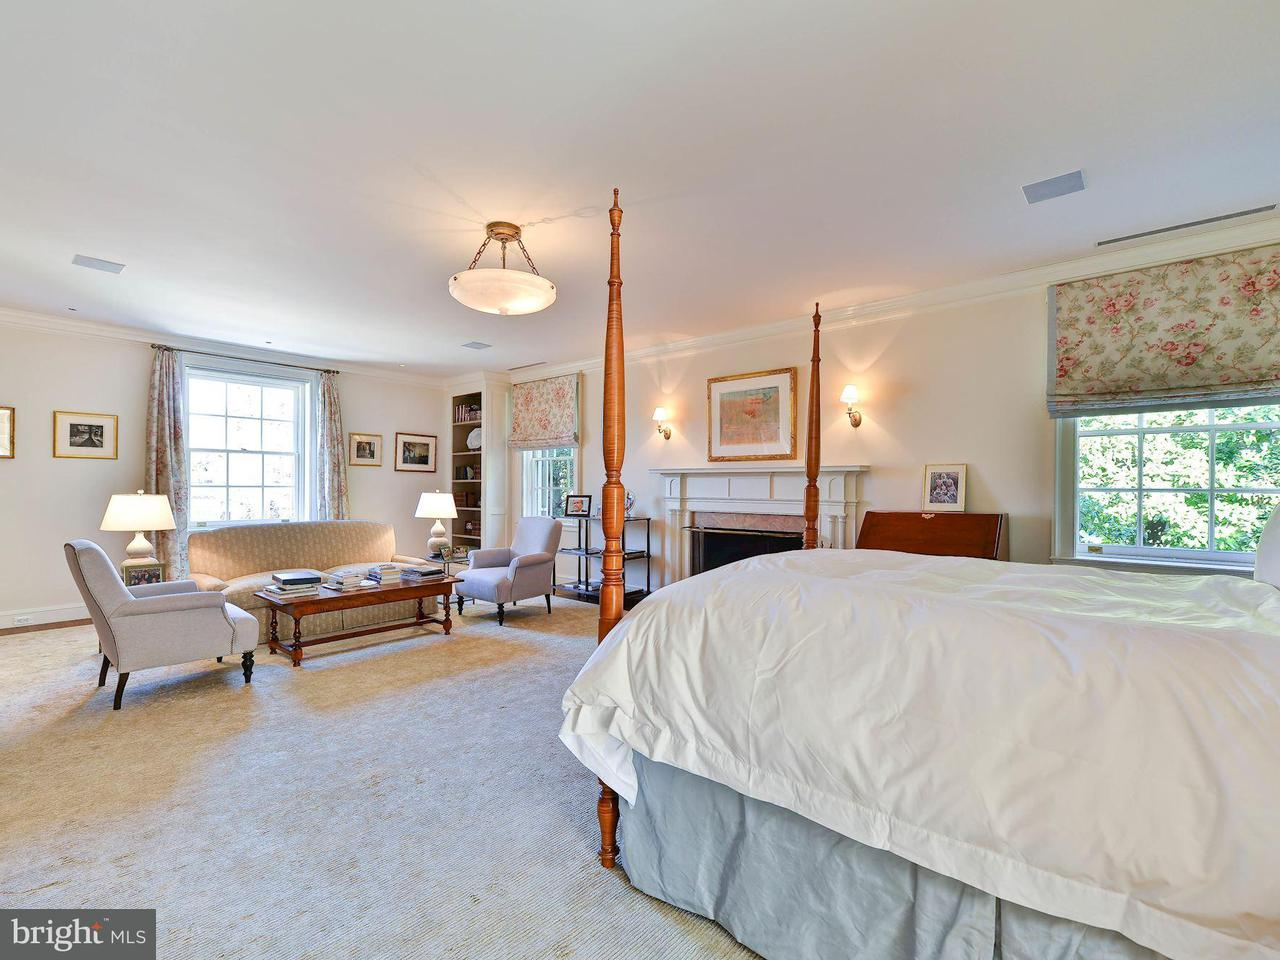 Additional photo for property listing at 1901 24th St NW  Washington, District Of Columbia 20008 United States